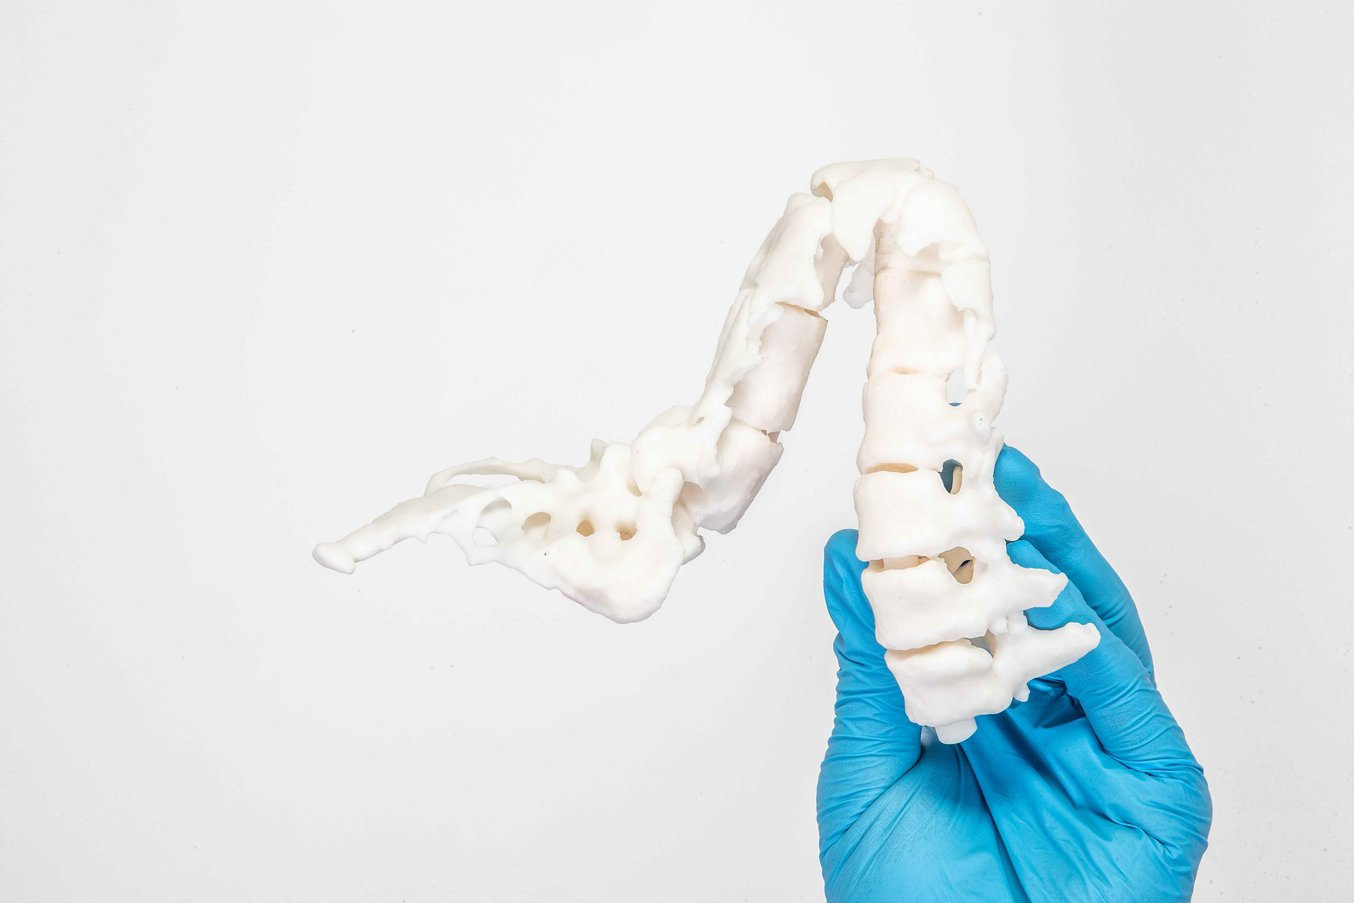 Patient-specific anatomical models: 3d printed spine